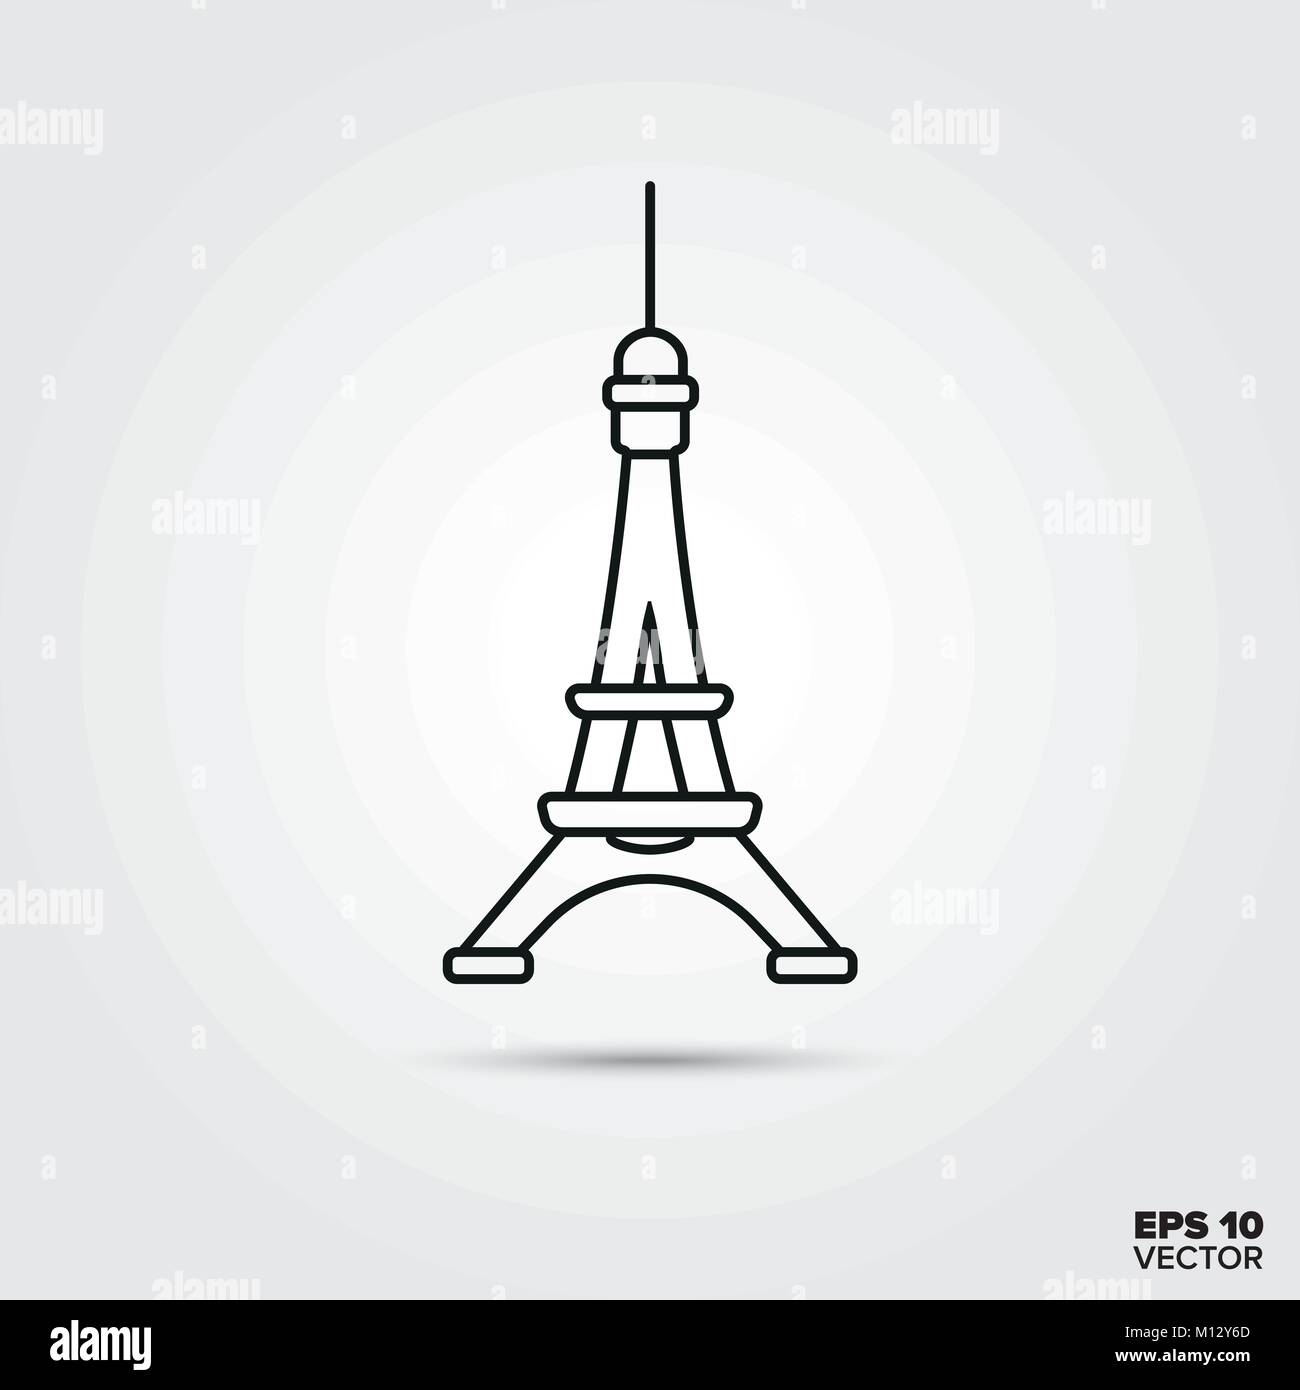 Symbol of France. Line icon of the Eiffel Tower. - Stock Vector